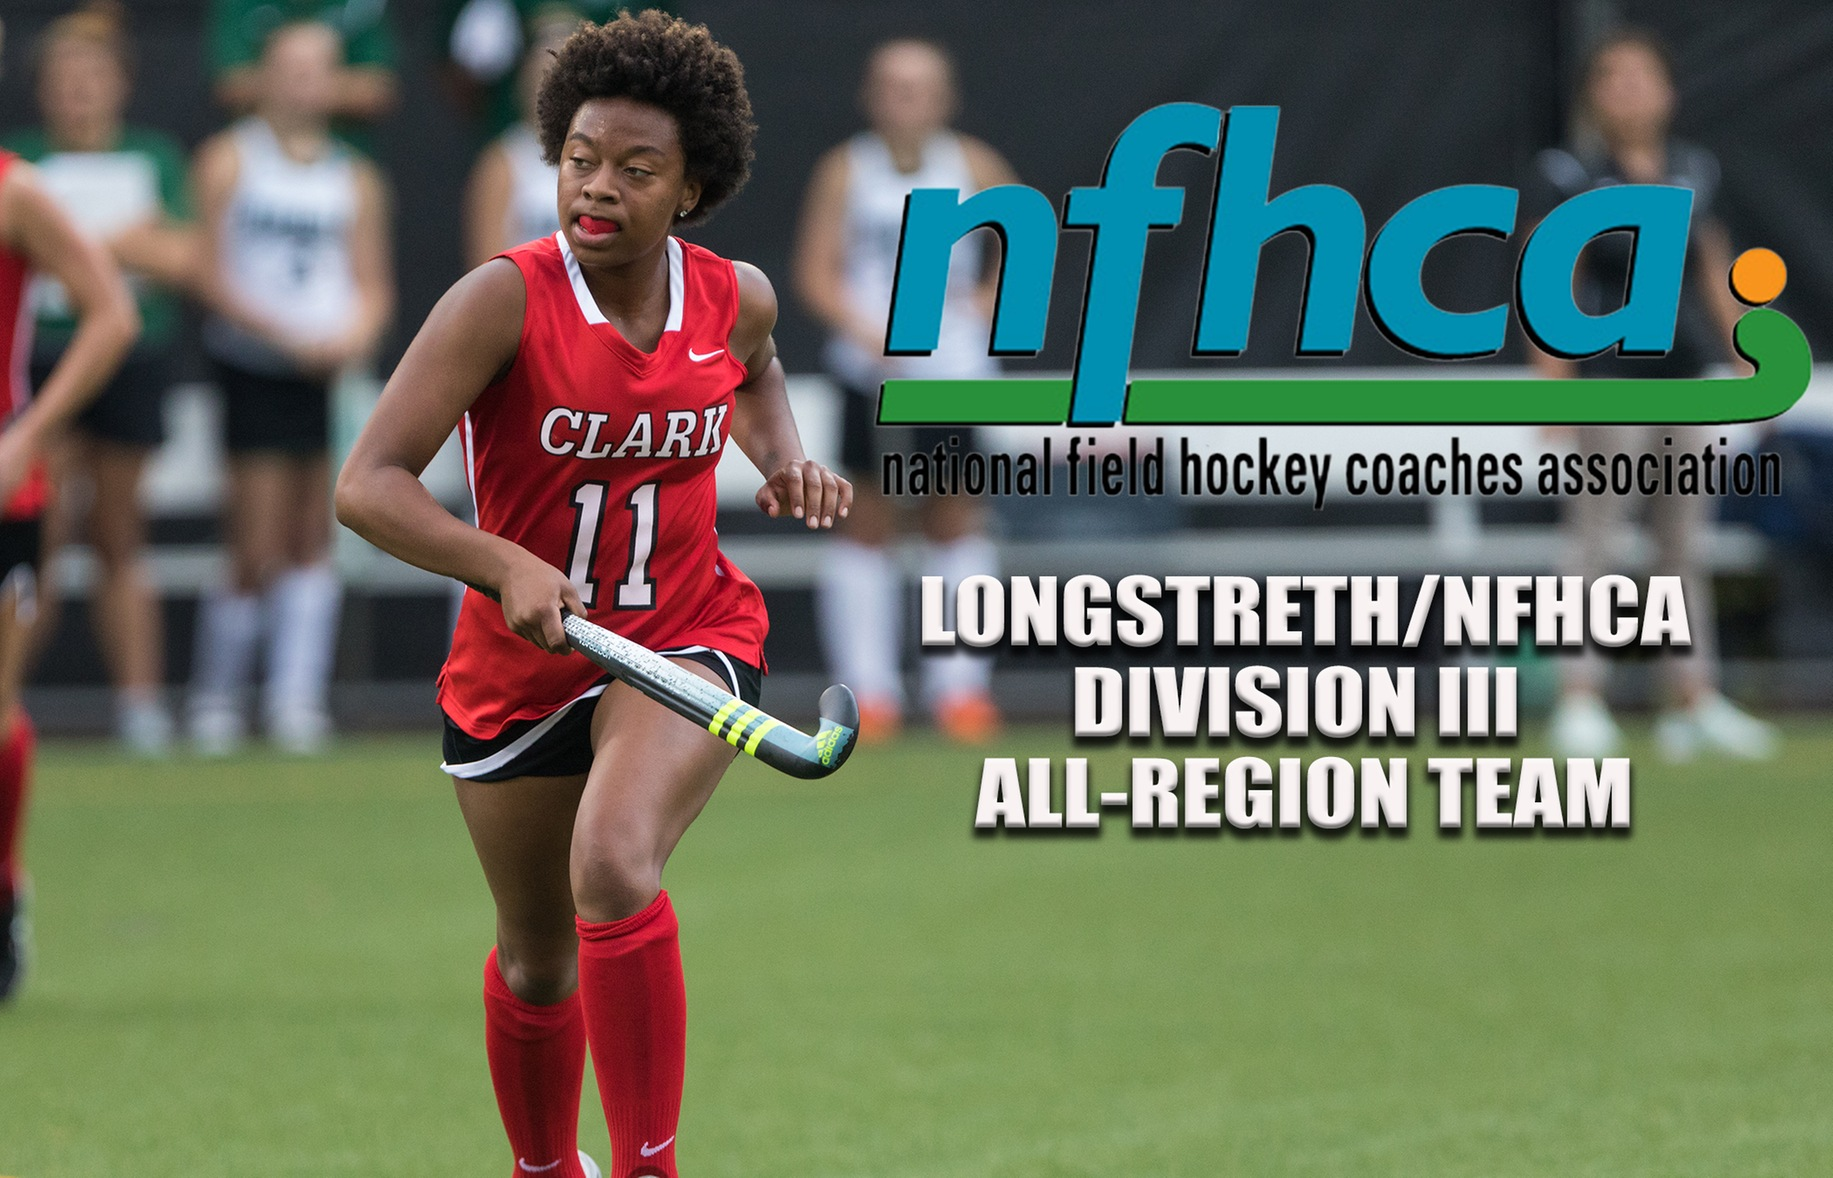 Barksdale Named to NFHCA All-Region Second Team